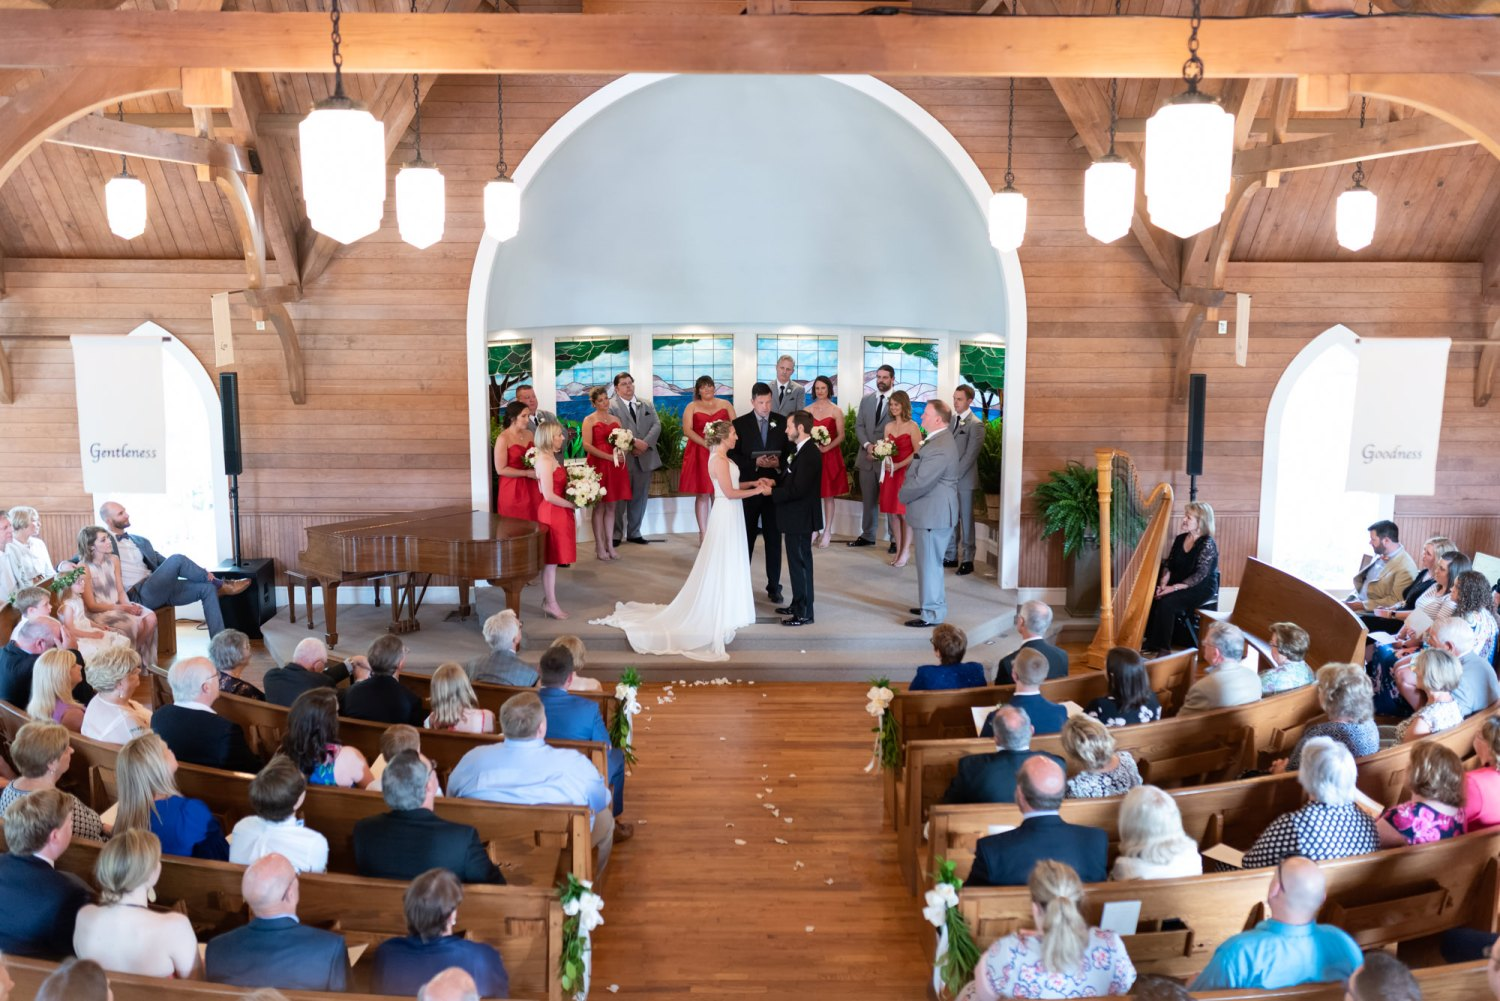 Nice view in the chapel - Pawleys Island Community Chapel